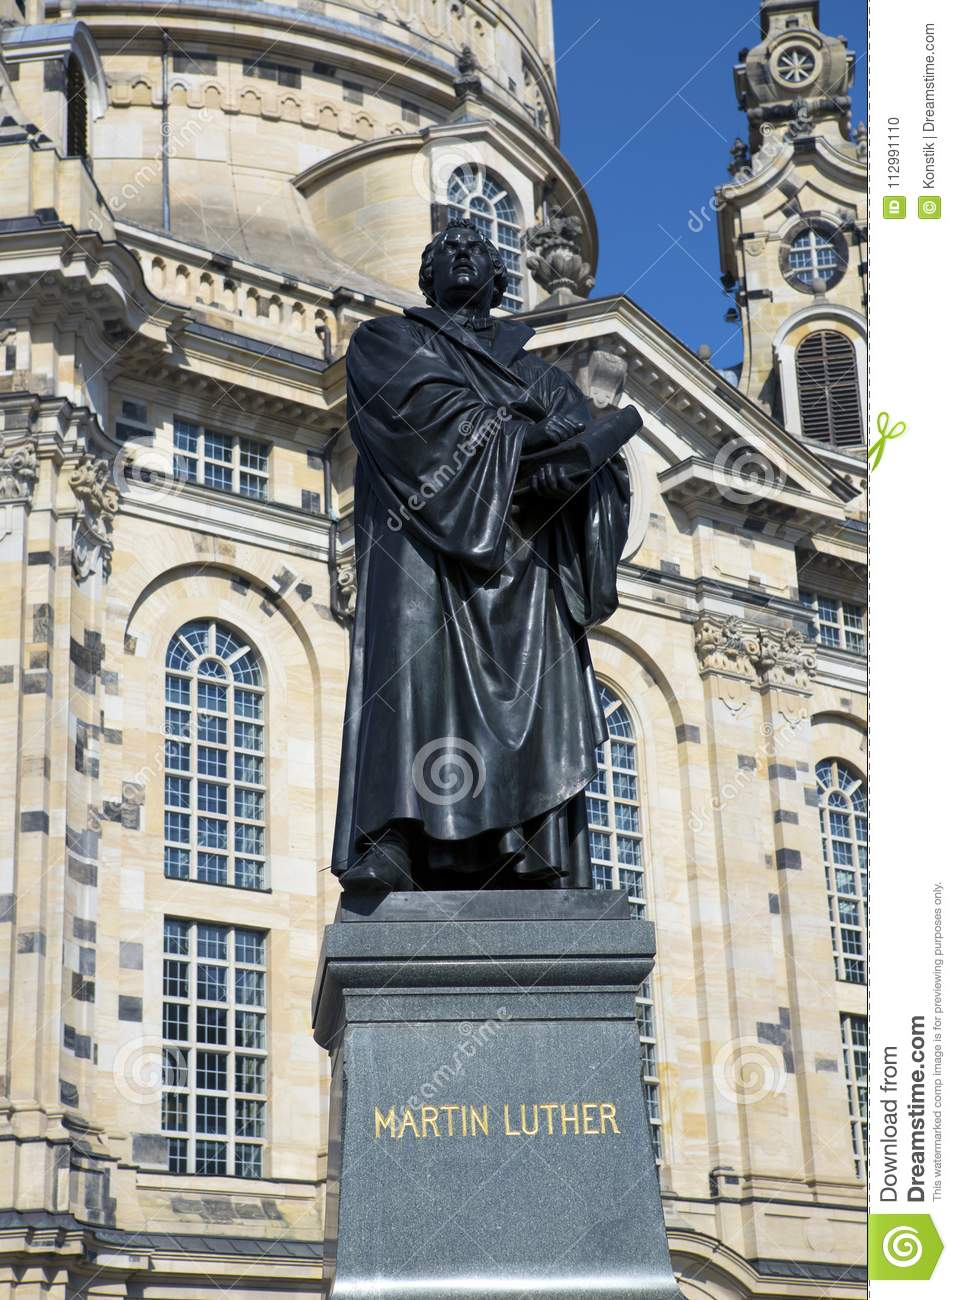 Dresden. Martin Luther monument in front of Frauenkirche cathedral